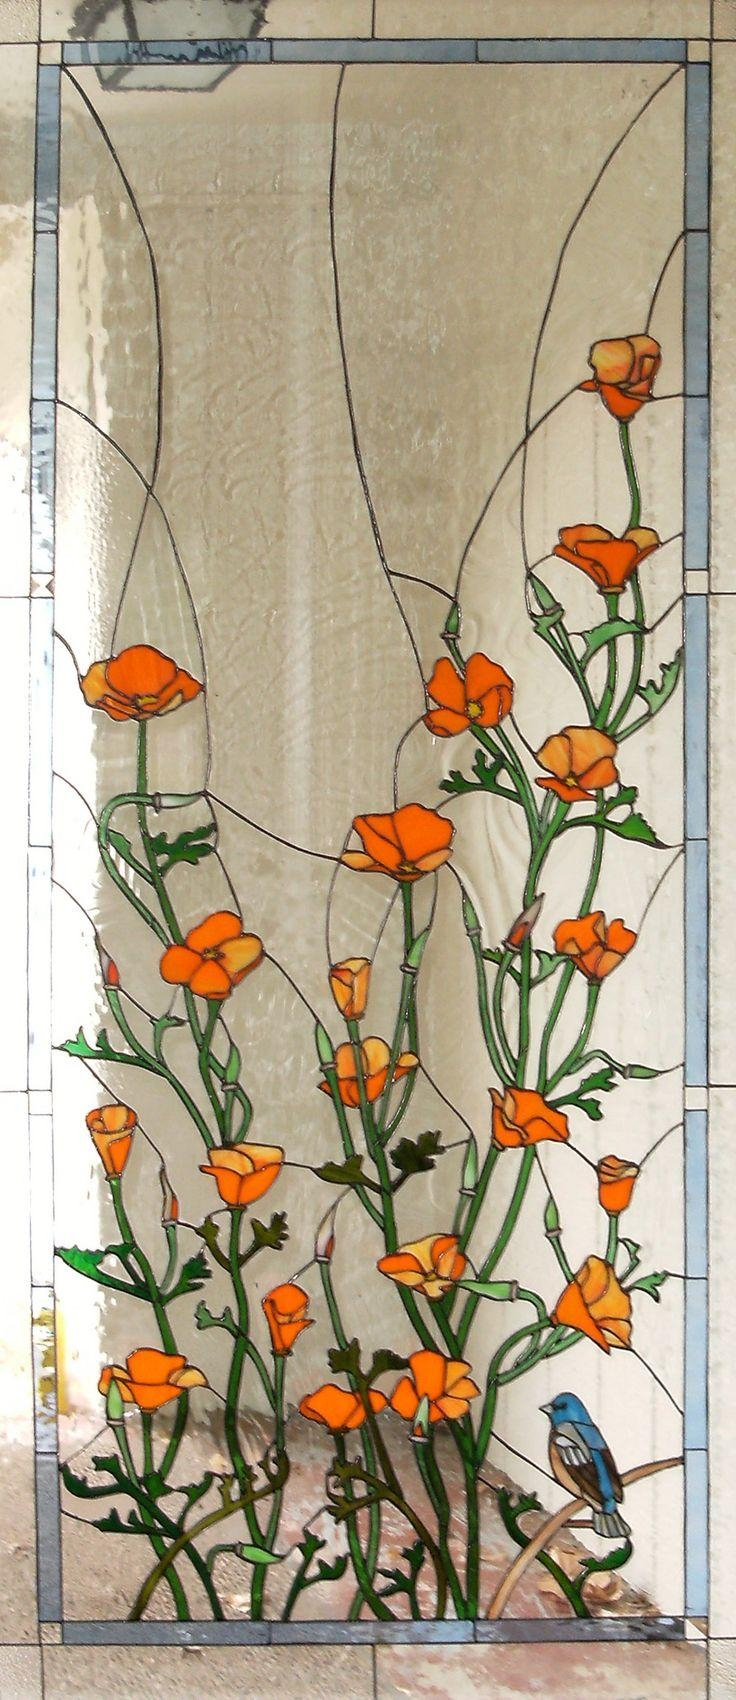 1899 Best Stained Glass Images On Pinterest | Stained Glass, Fused Regarding Fused Glass Flower Wall Art (View 5 of 20)